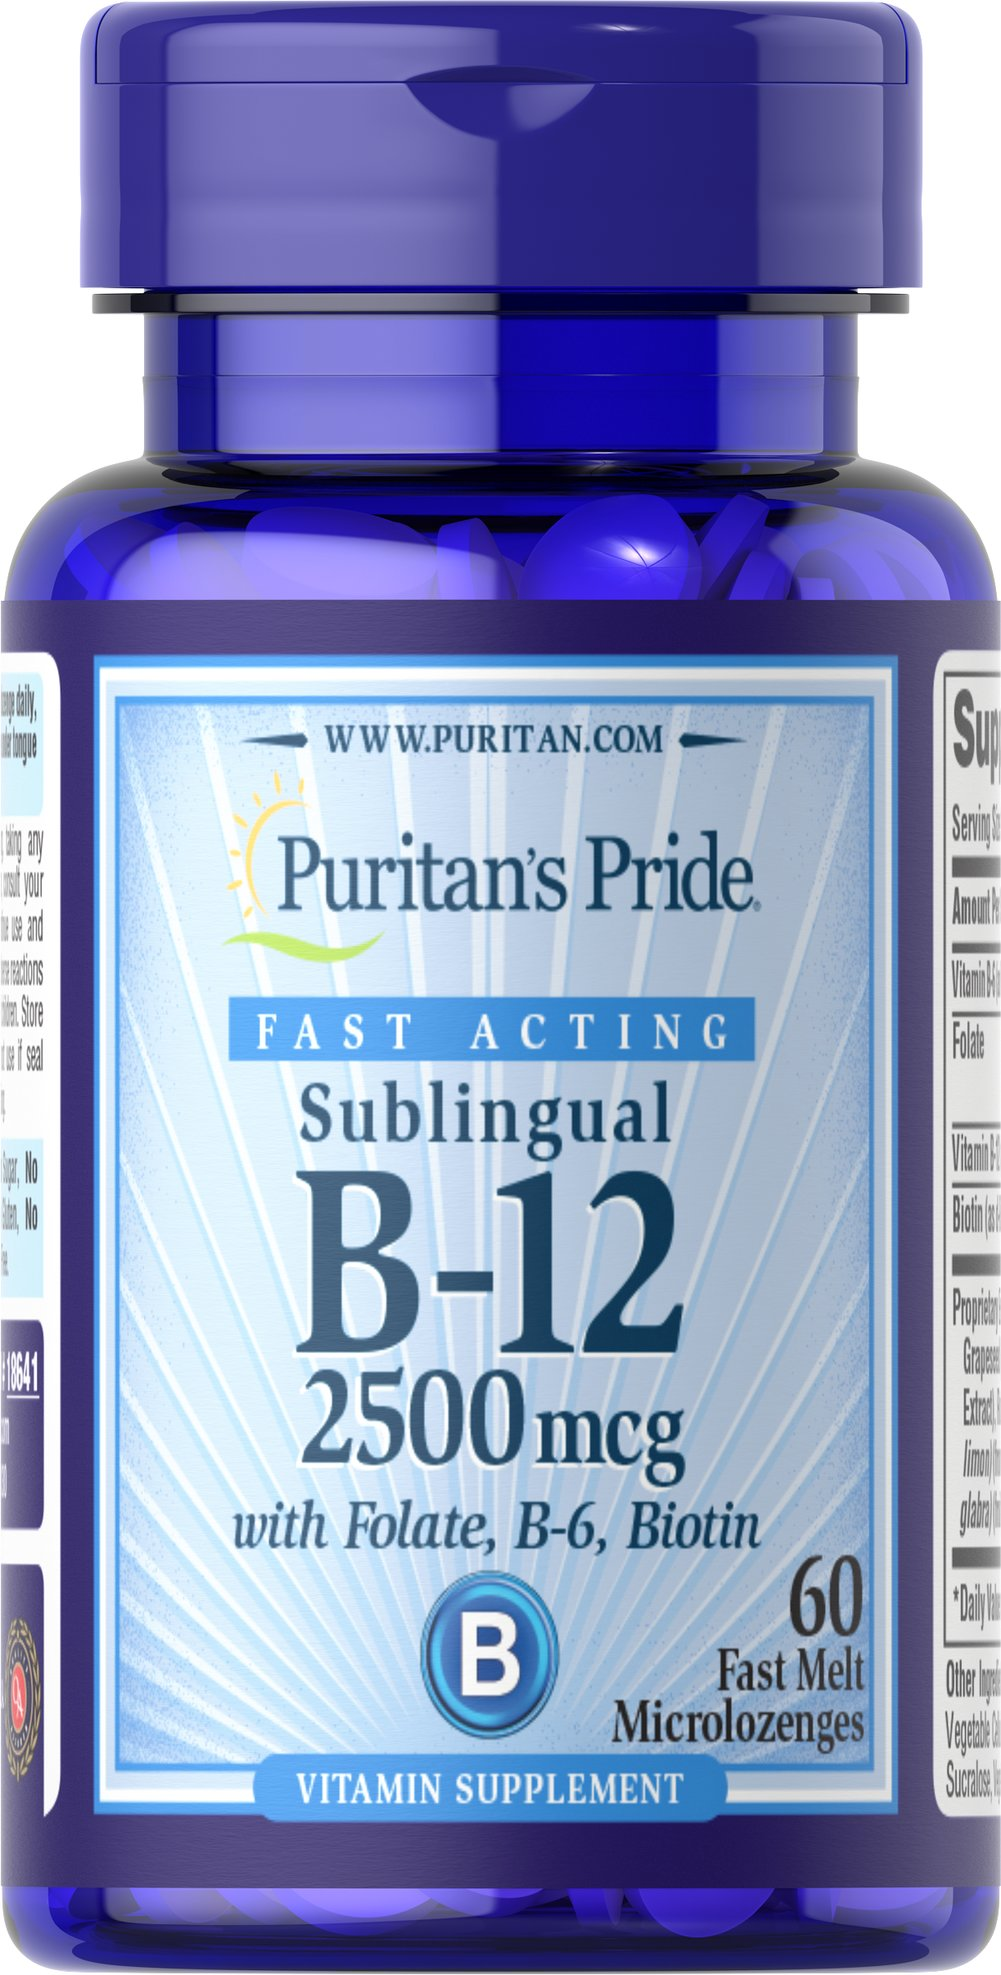 Vitamin B-12 2500 mcg Sublingual with Folic Acid, Vitamin B-6 and Biotin  60 Microlozenges 2500 mcg $19.99